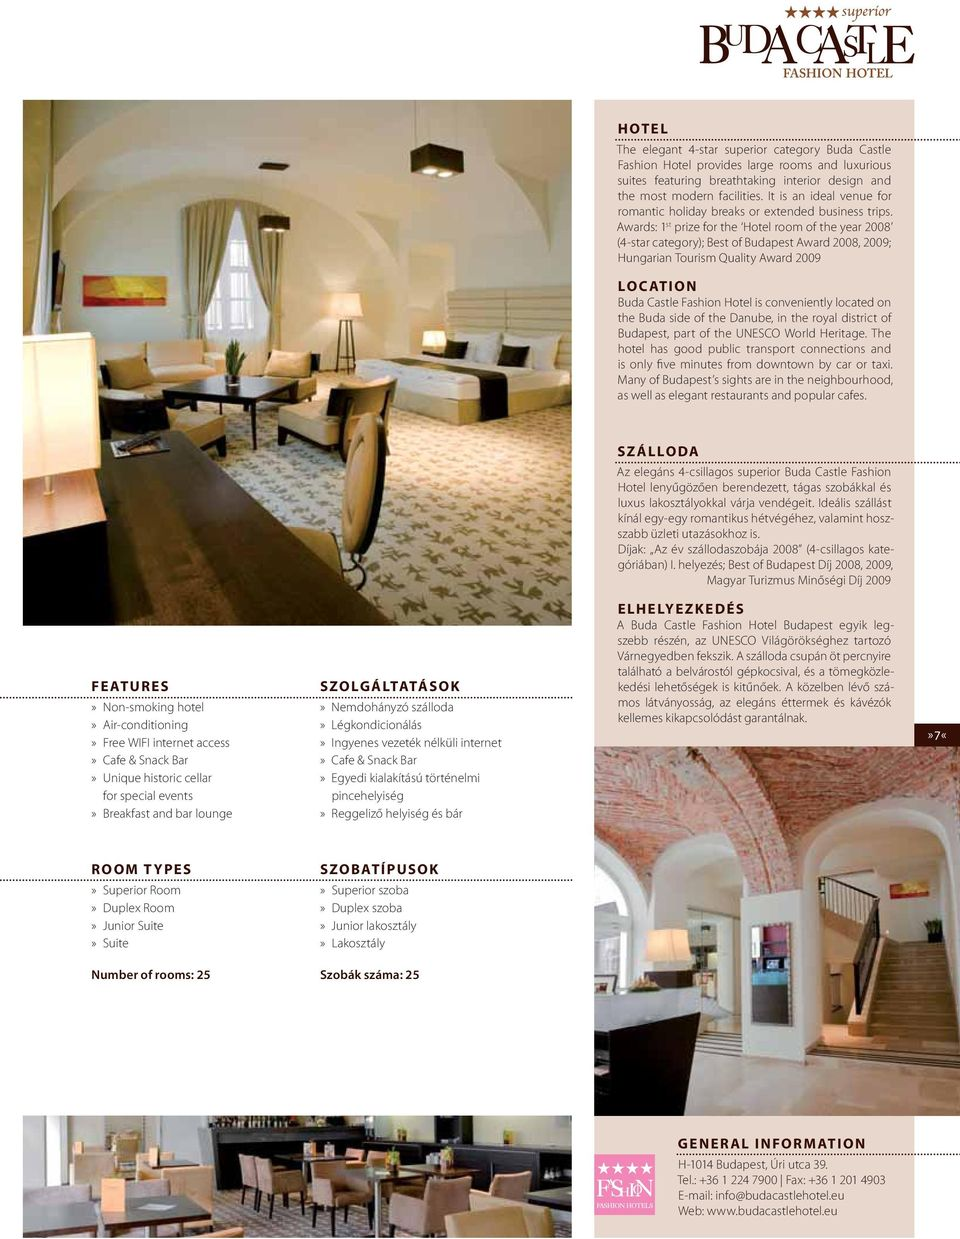 Awards: 1 st prize for the Hotel room of the year 2008 (4-star category); Best of Budapest Award 2008, 2009; Hungarian Tourism Quality Award 2009 LOCATION Buda Castle Fashion Hotel is conveniently